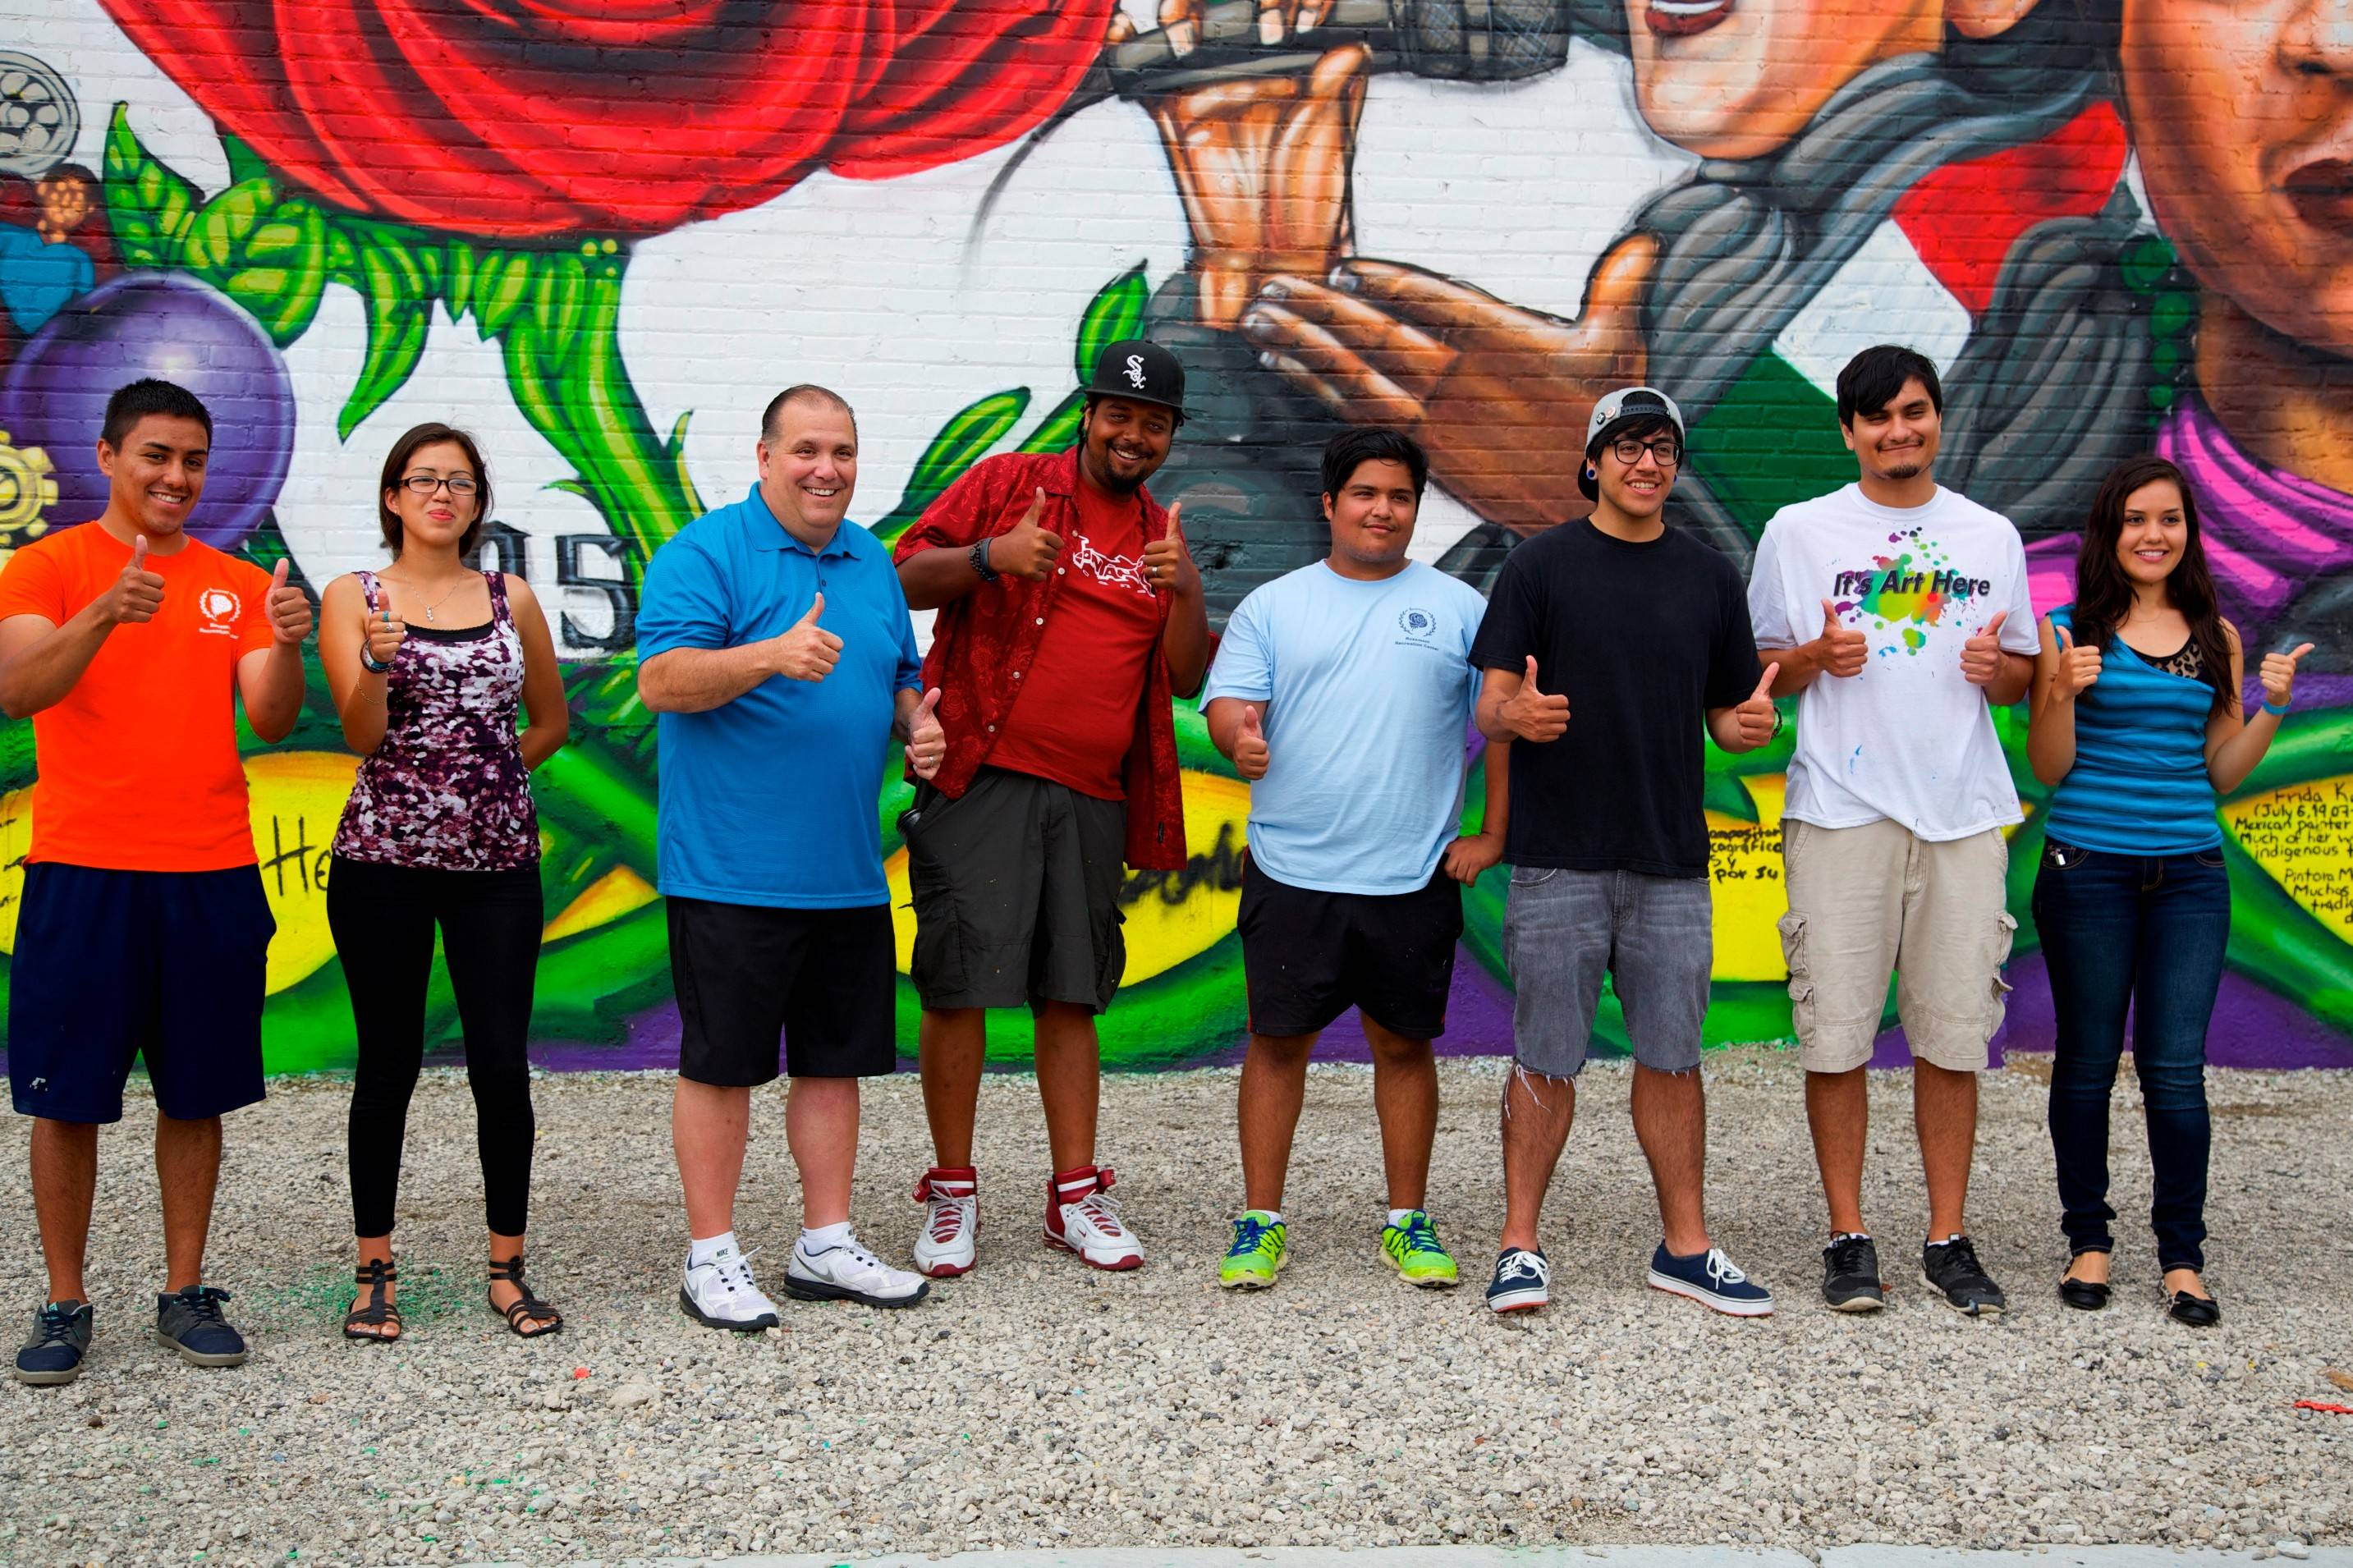 Rosemont Mayor Brad Stephens, third from left, and Chicago muralist Rahmaan Statik, fourth from left, joined local student artists on Saturday to unveil three murals they created near the Rosemont Recreation Center. The murals depict images of Mexican history and culture.